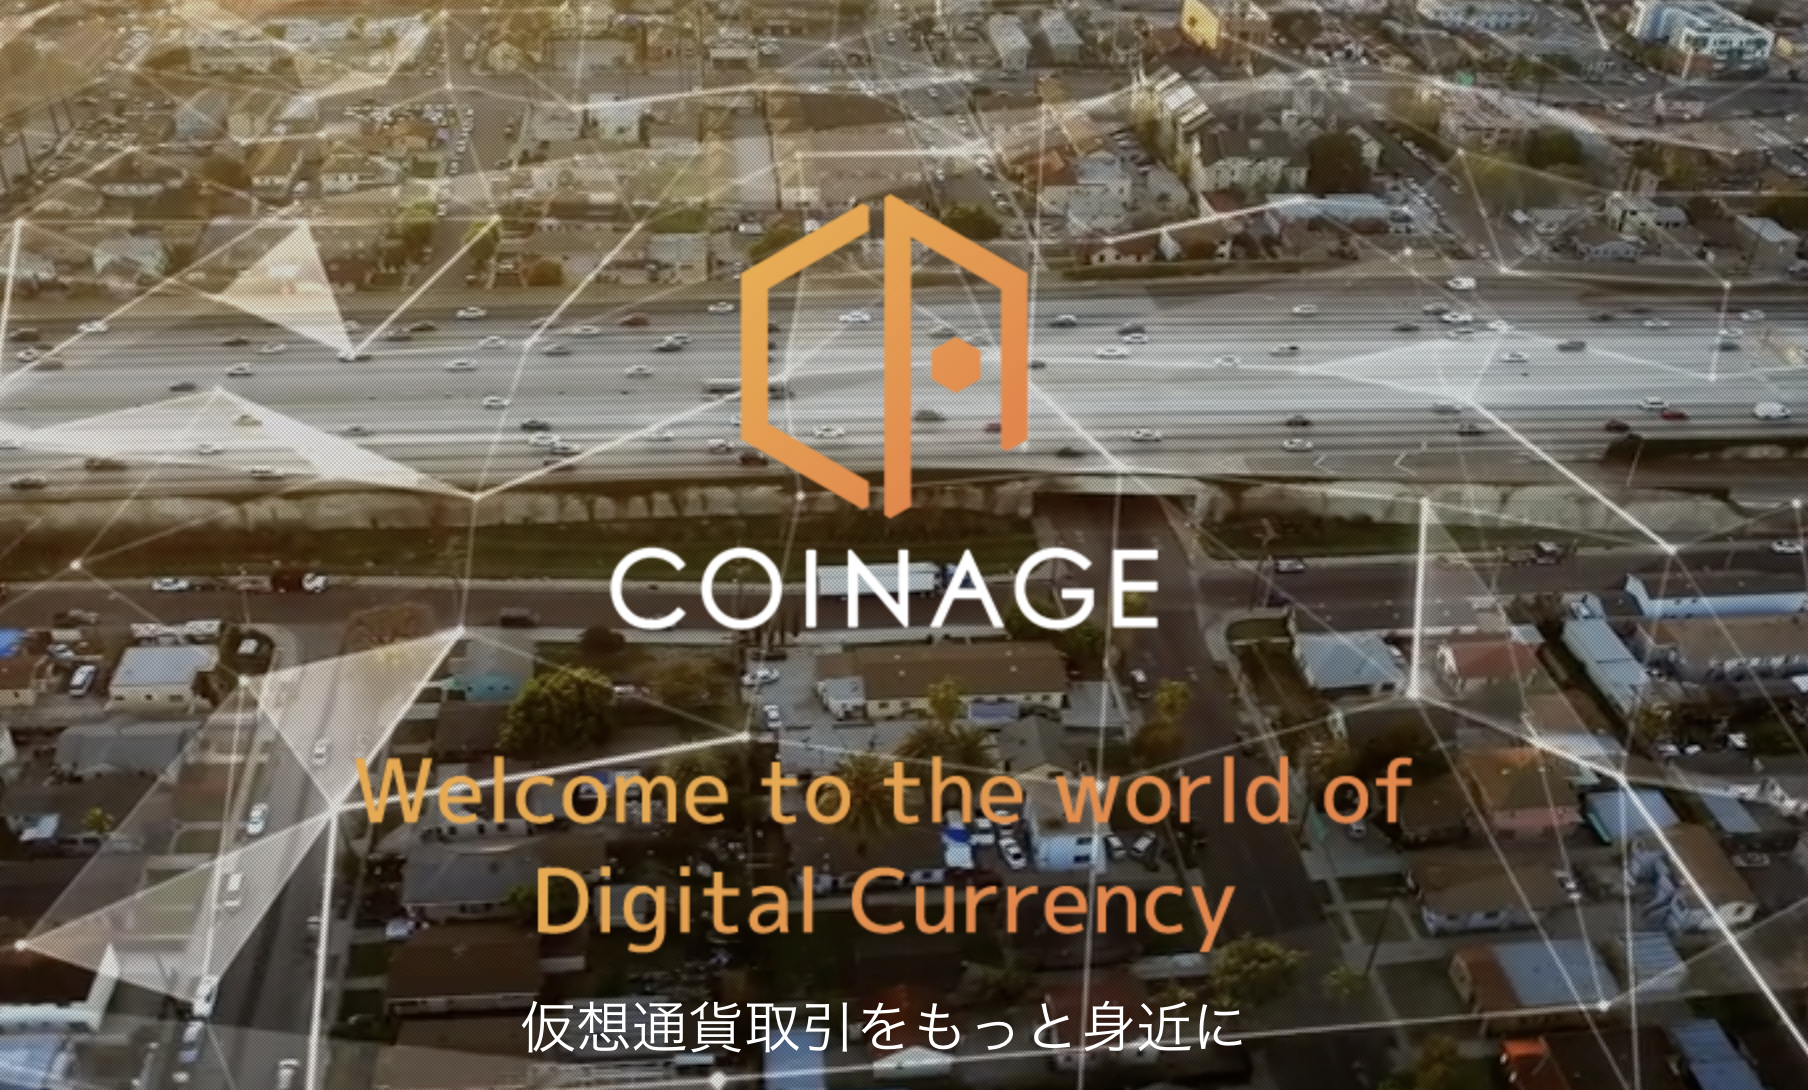 COINAGE(コイネージ)のロゴ